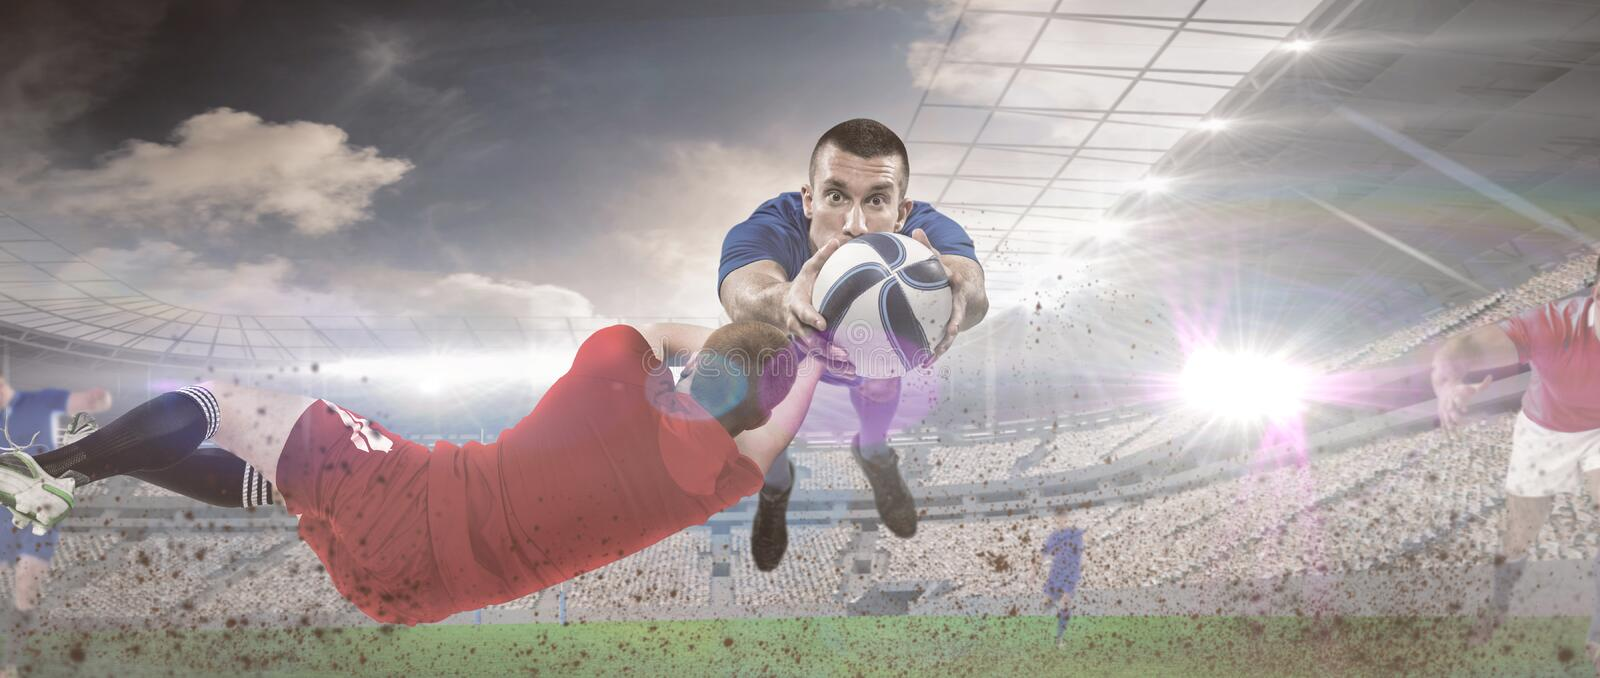 Composite image of a rugby player scoring a try. A rugby player scoring a try against rugby match royalty free stock image